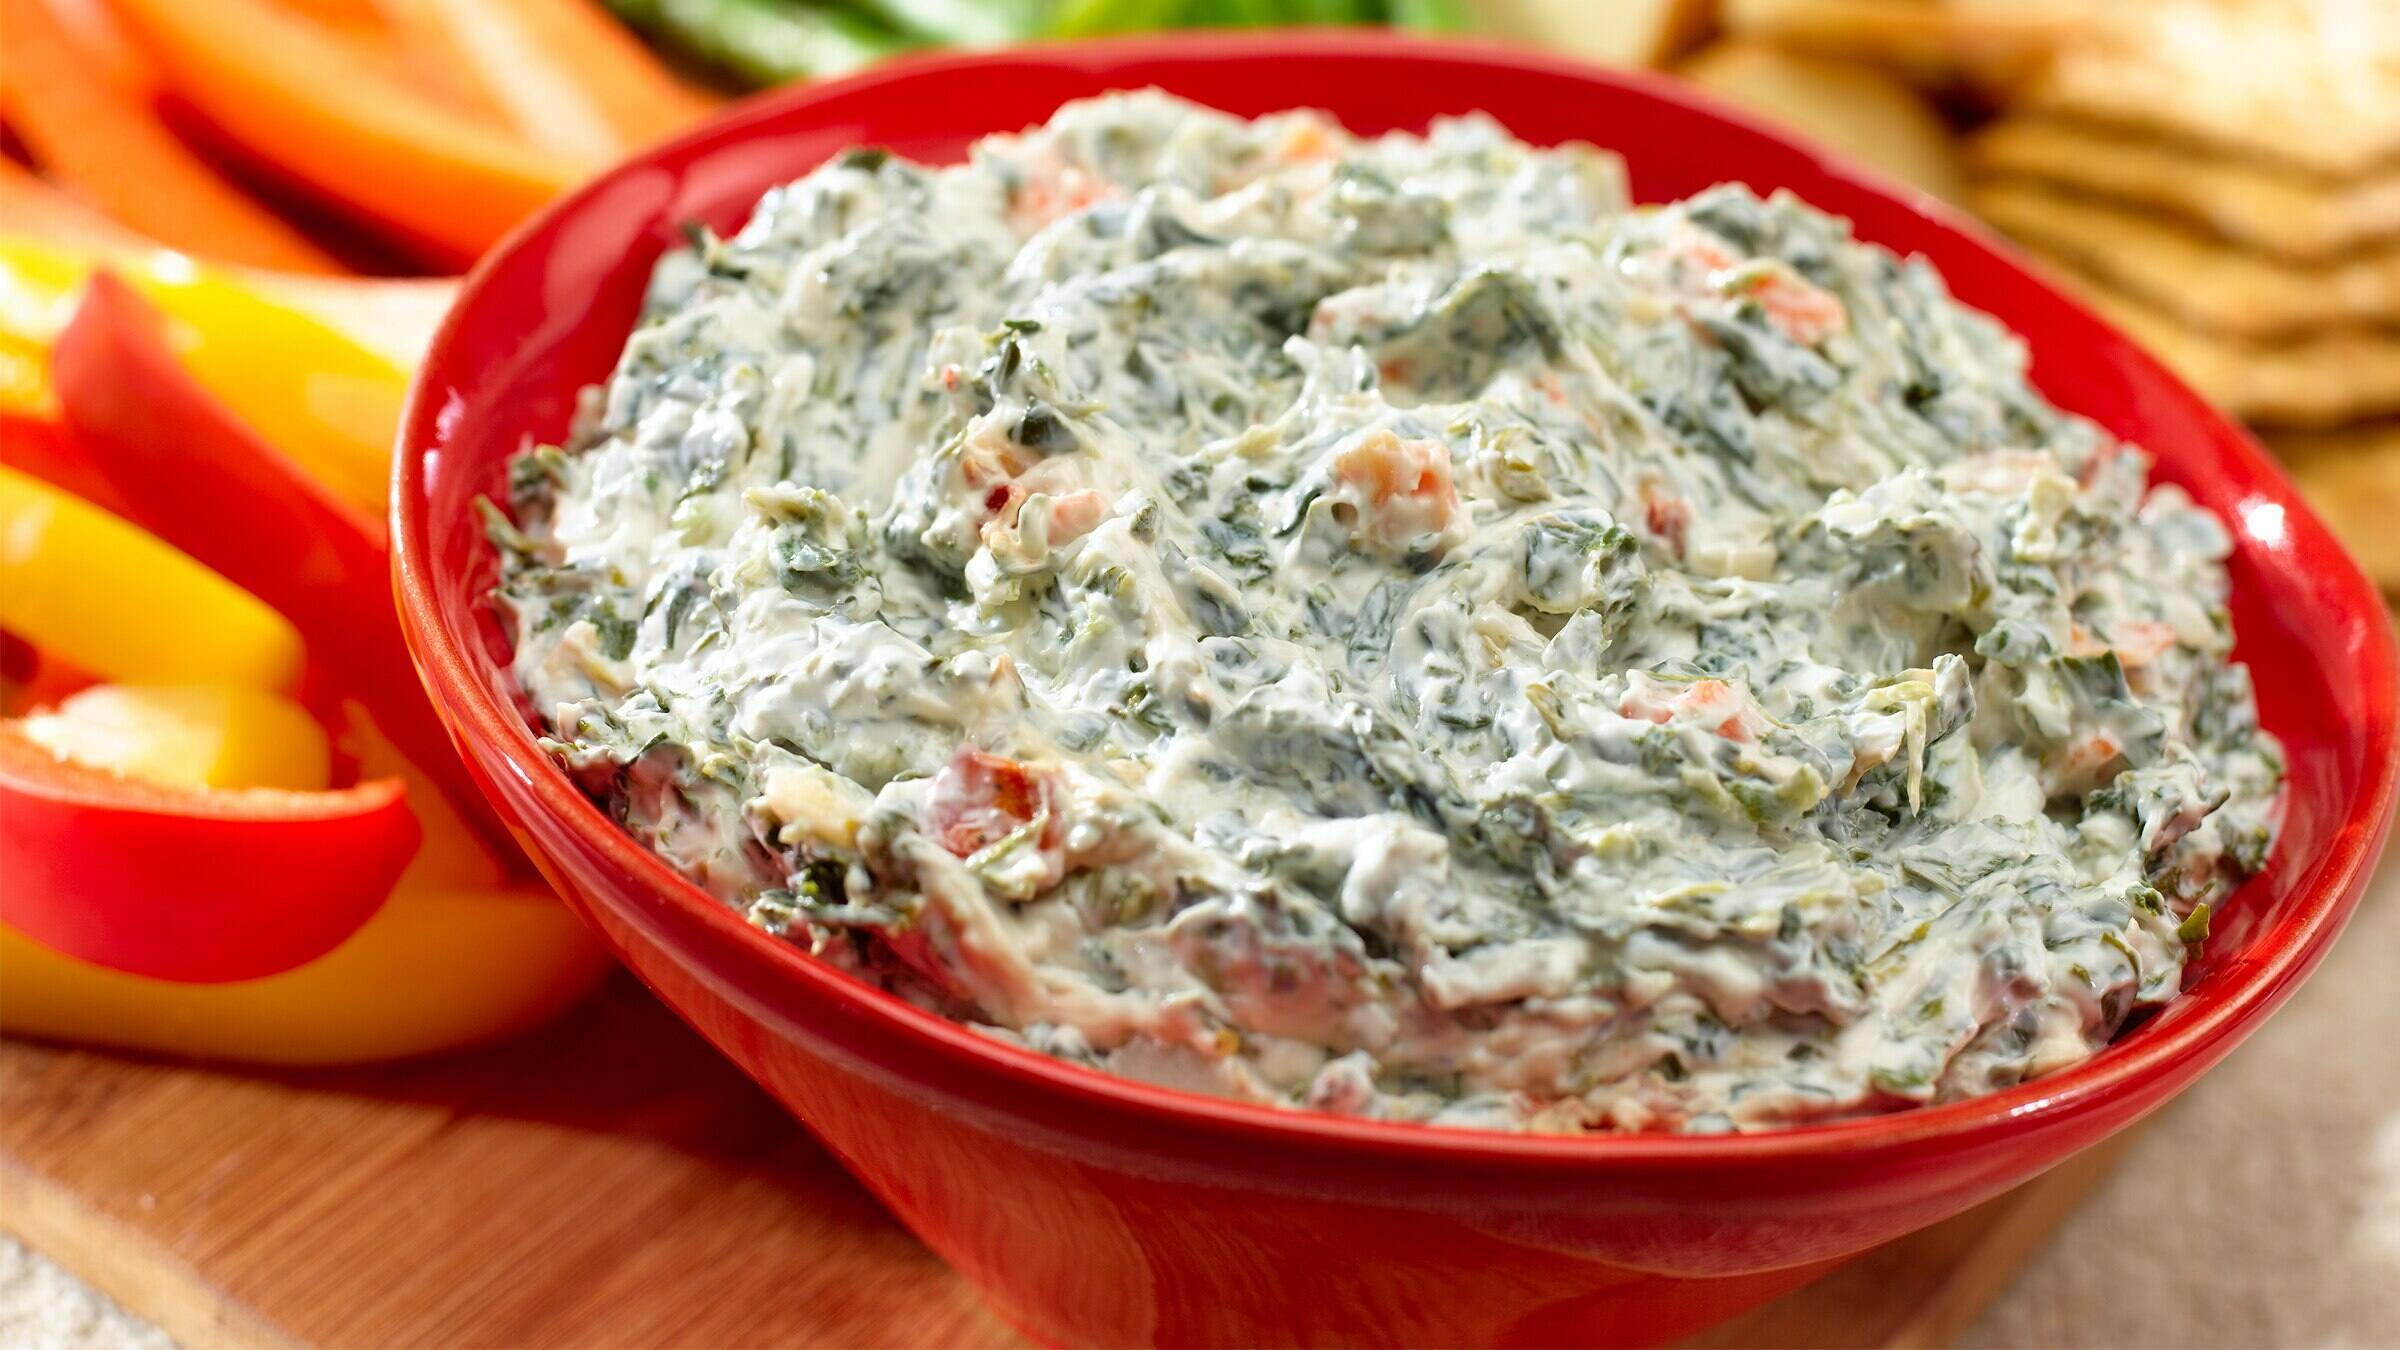 Kicked Up Spinach Dip